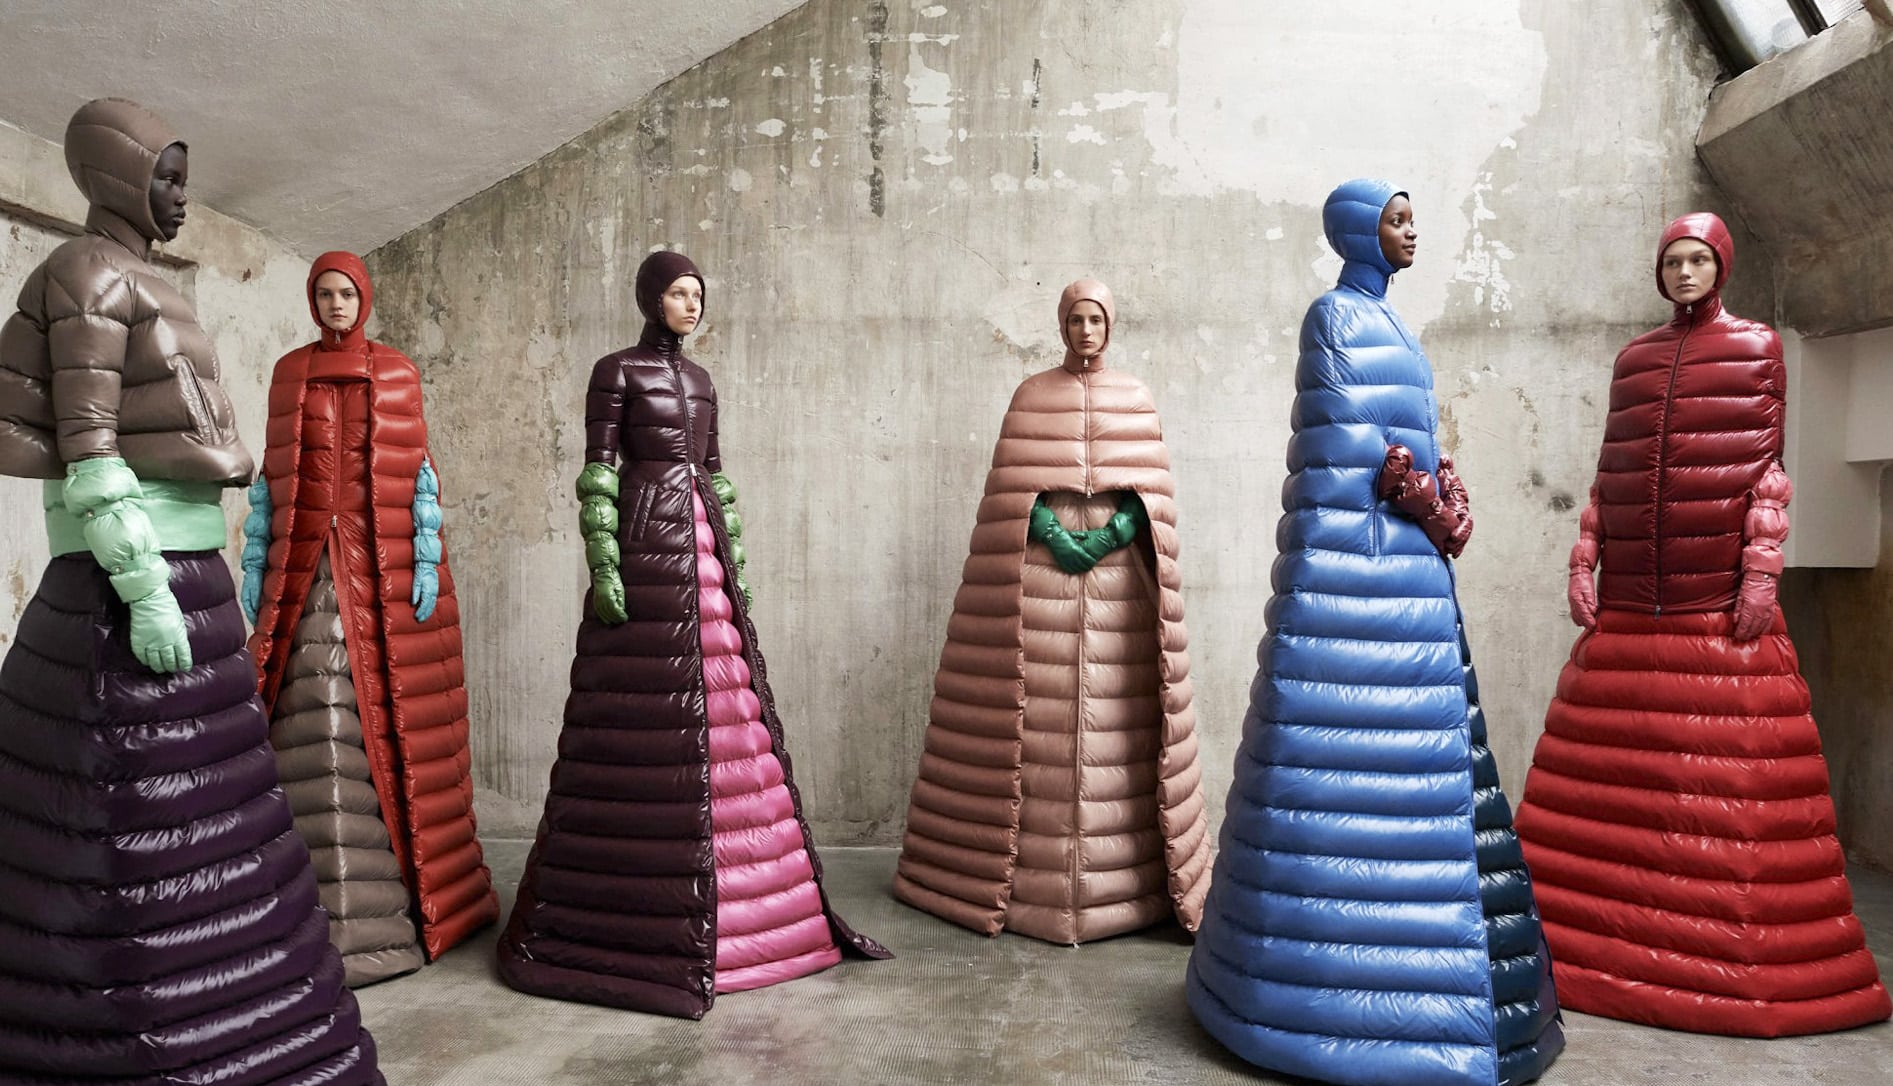 Pierpaolo Piccioli's collection for Moncler Genius weaves a medieval dream